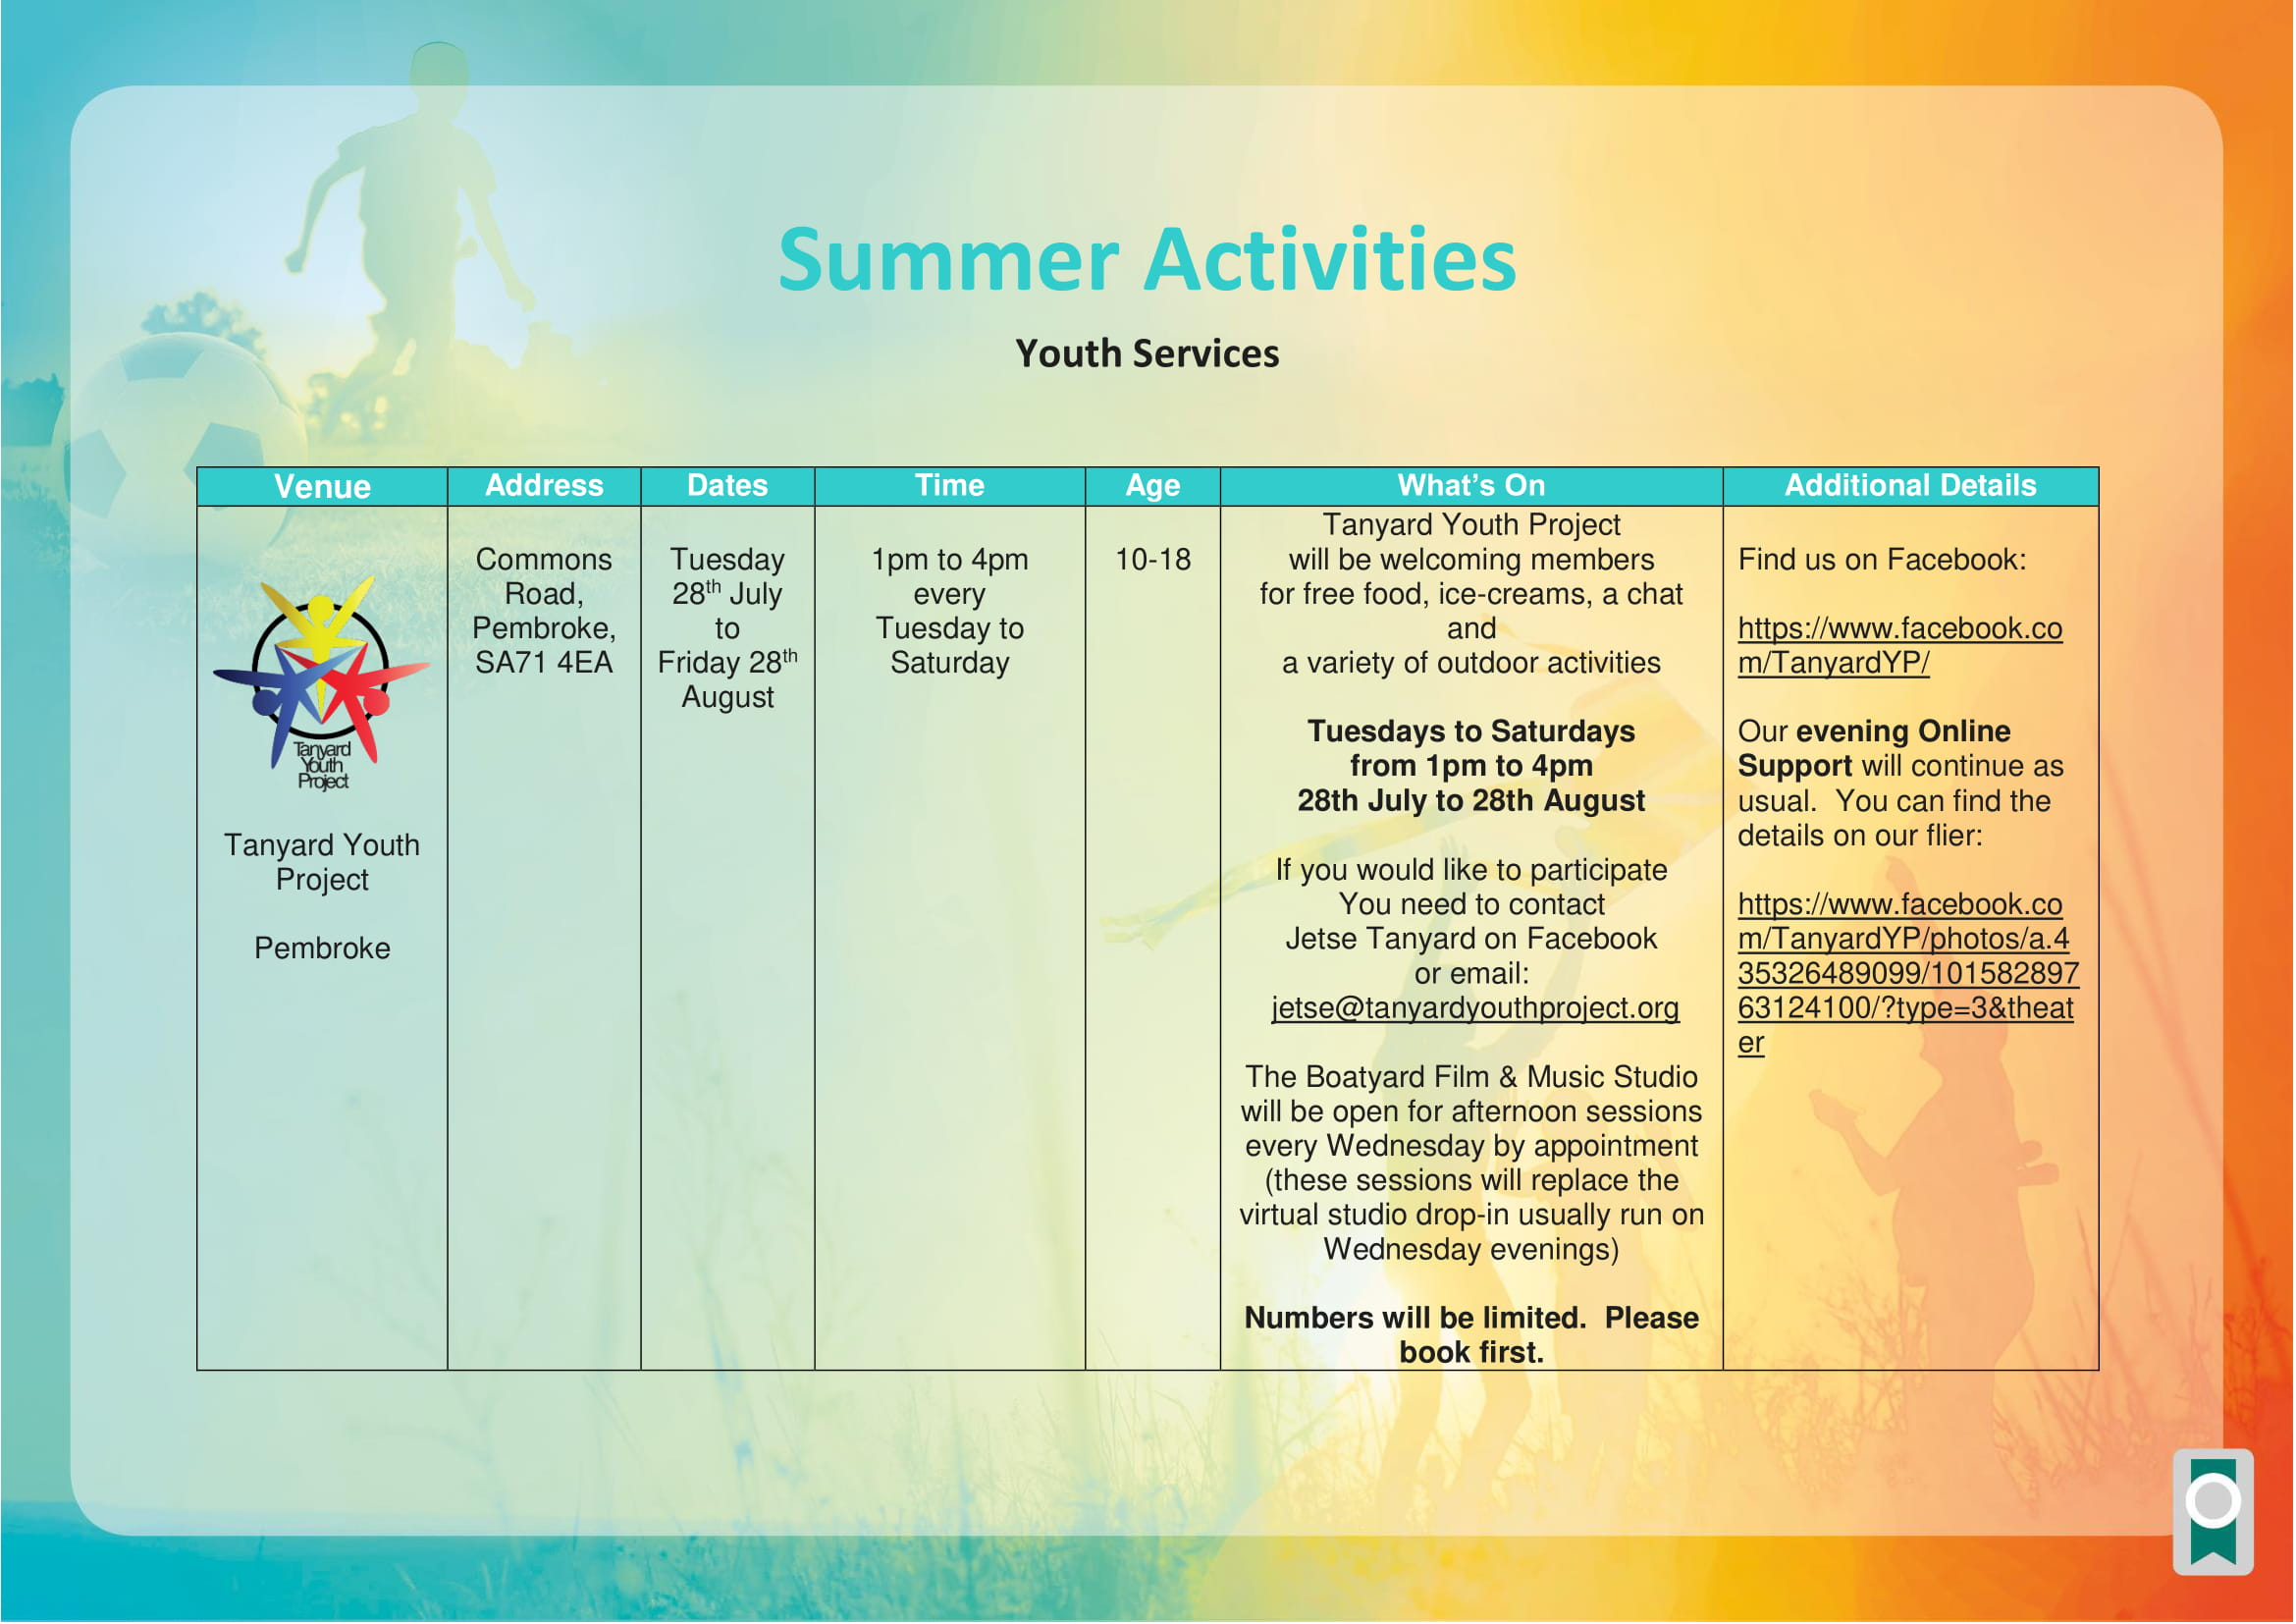 Summer_Activities_Youth_Services_2020-1.jpg